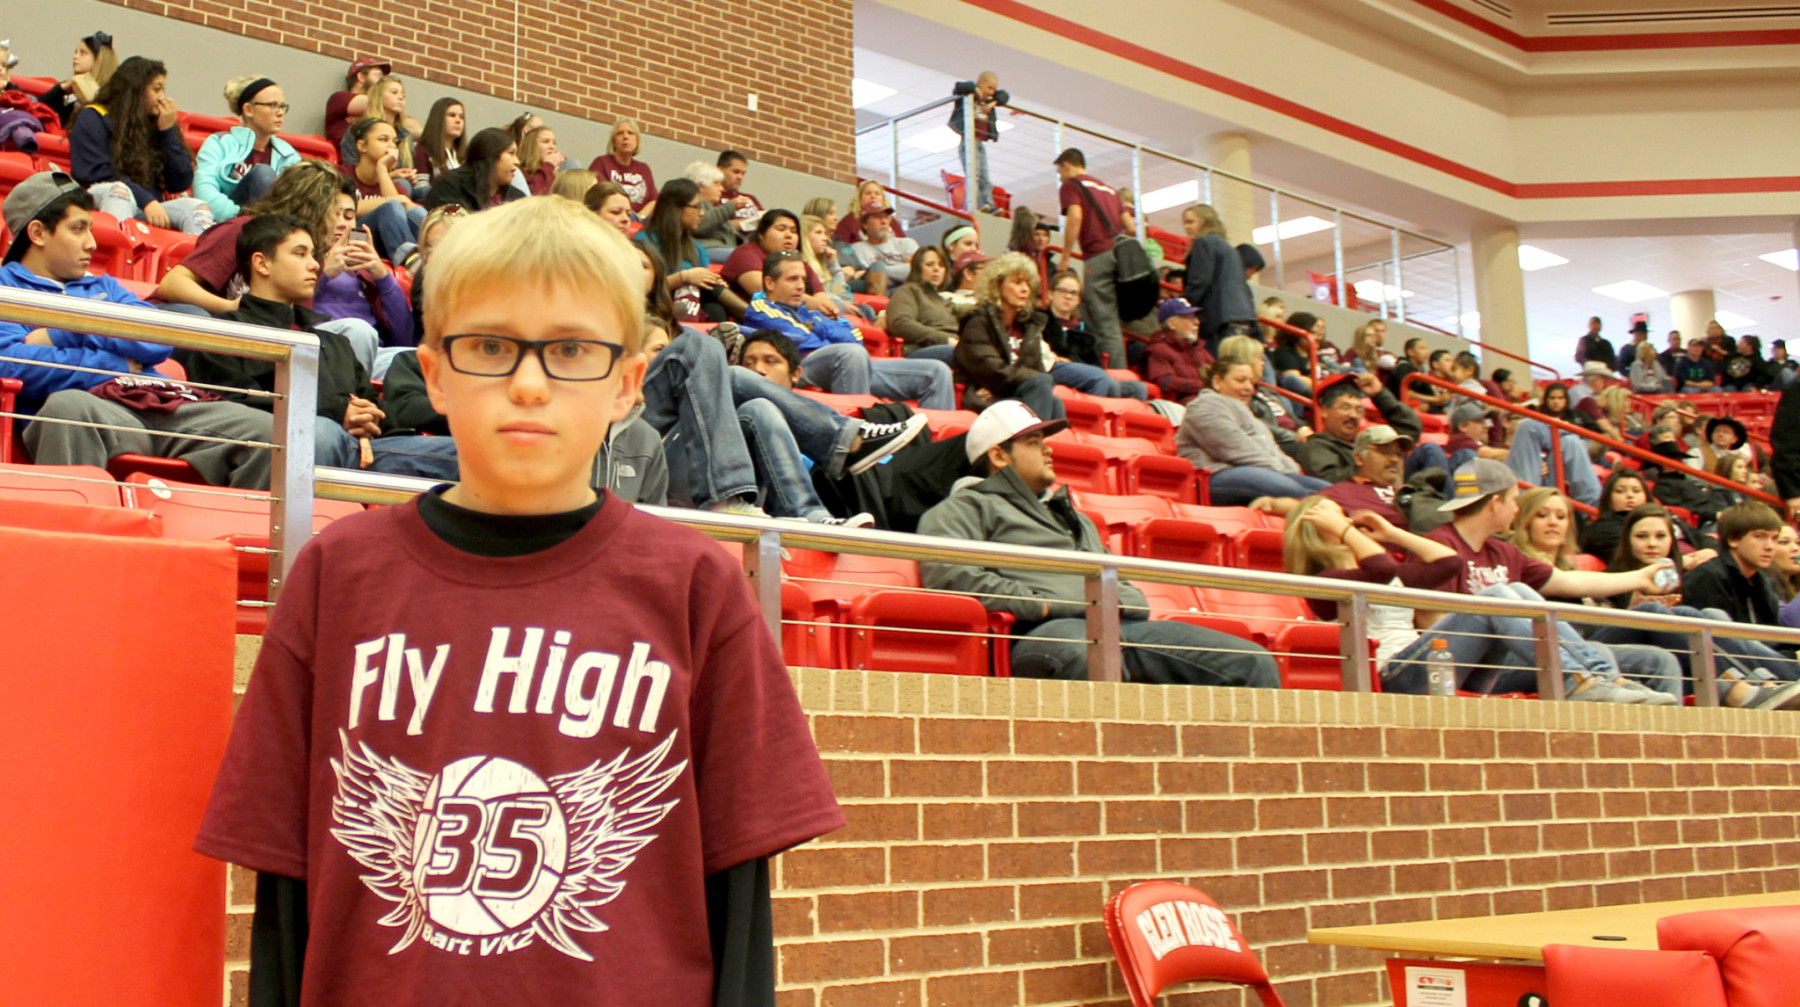 Gus Boeve of Lingleville donned the T-shirts made in memory of Bart VanKranenburg for the Cardinals' game in Glen Rose Tuesday.